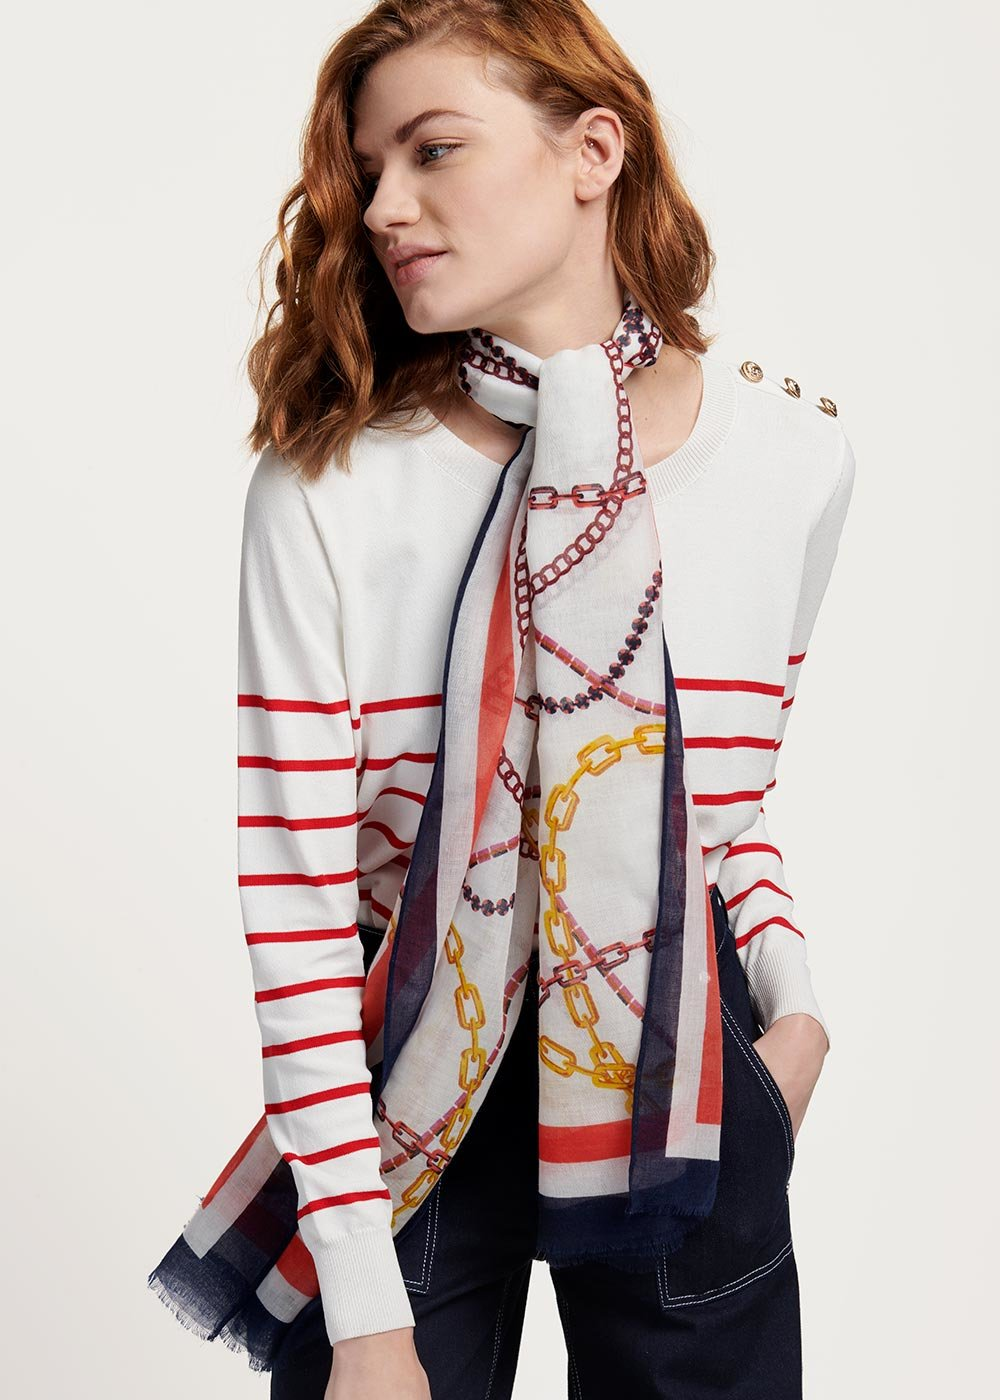 Sydn scarf with chain pattern - White Fantasia - Woman